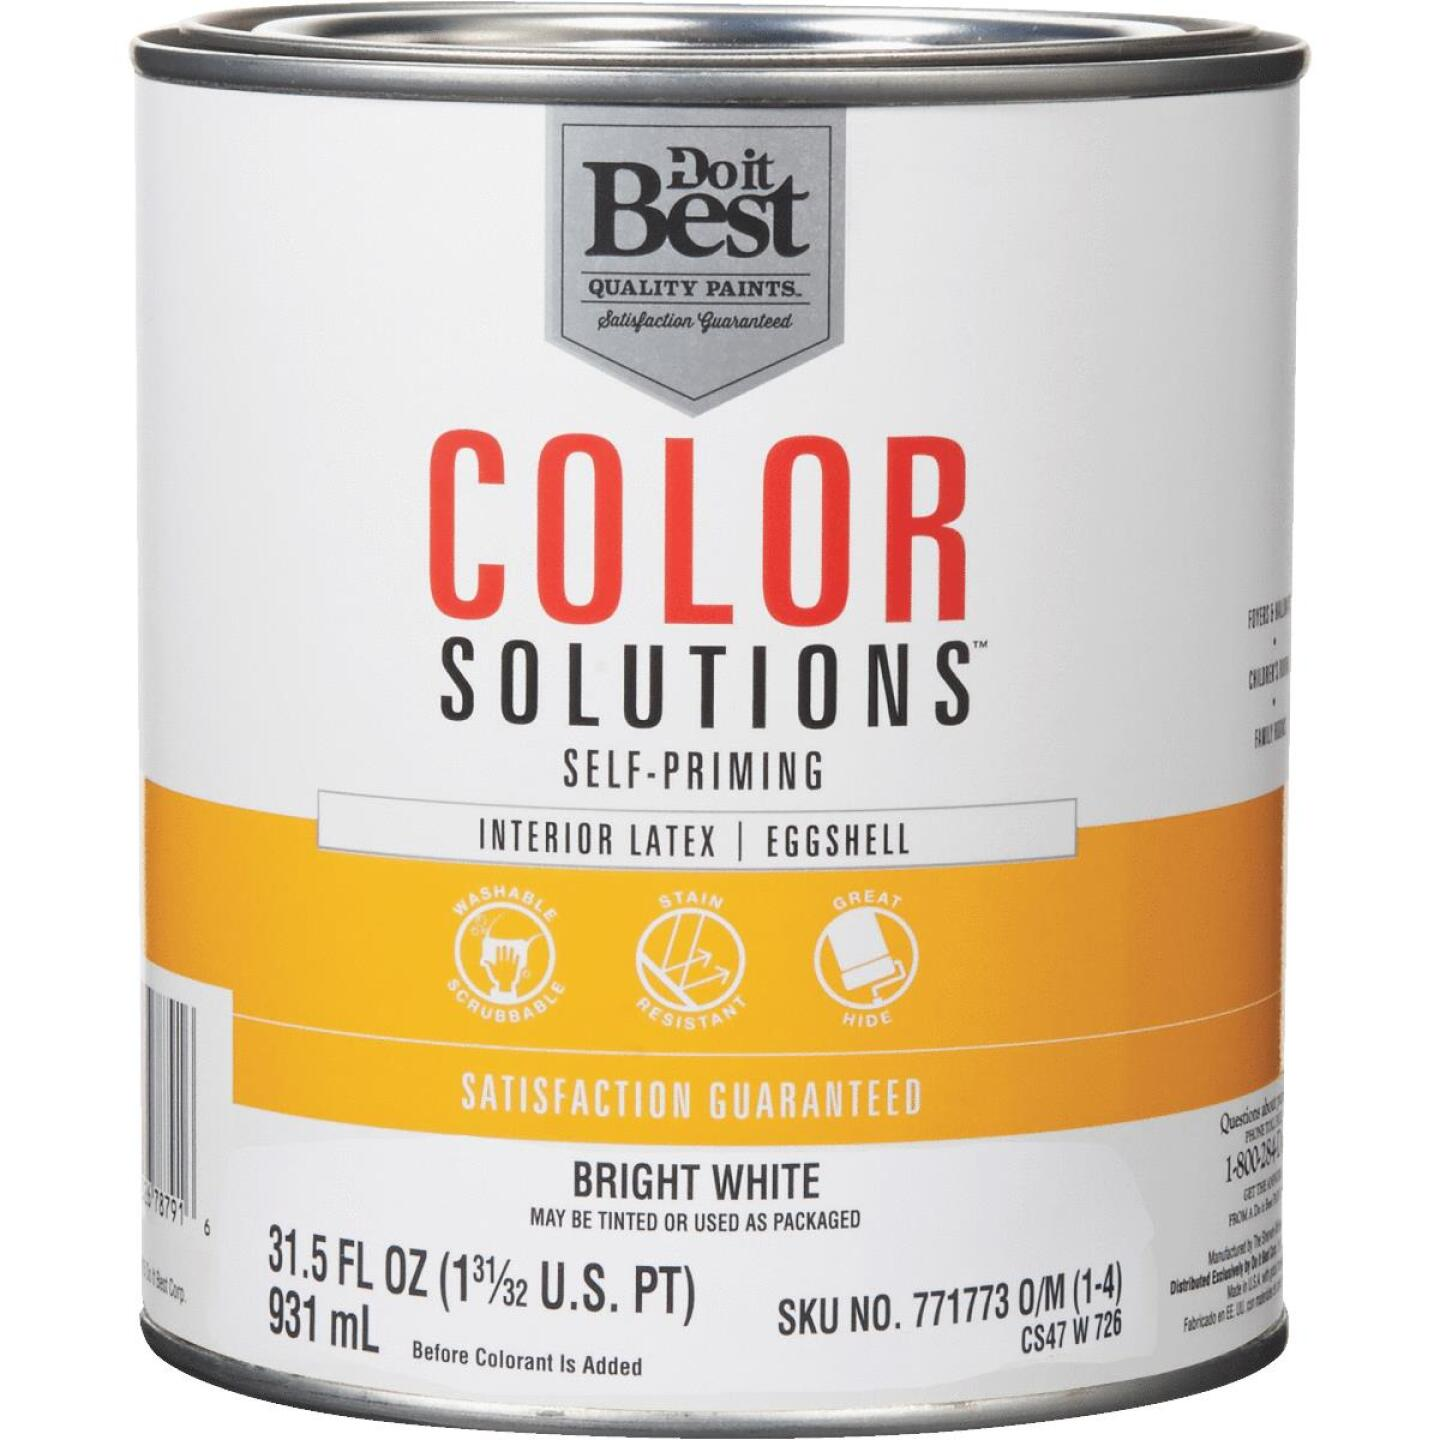 Do it Best Color Solutions Latex Self-Priming Eggshell Interior Wall Paint, Bright White, 1 Qt. Image 1